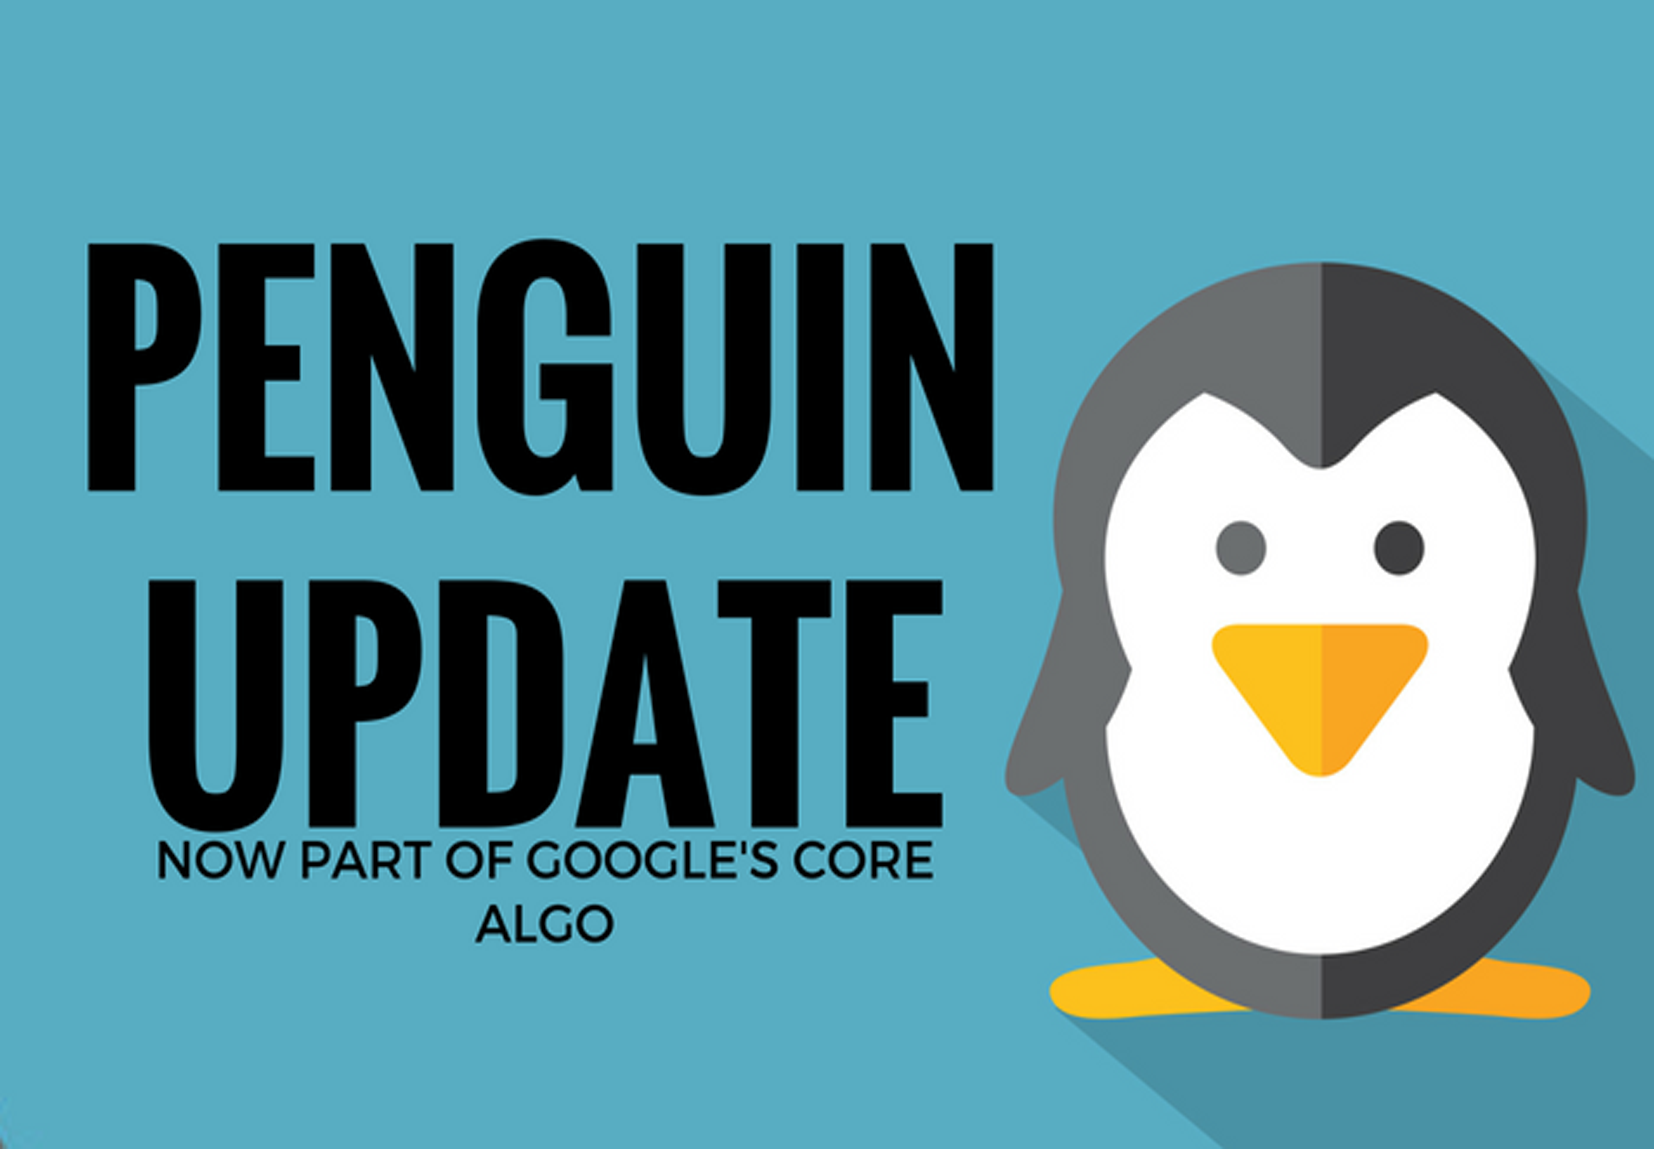 Google Updates Penguin, Says It Now Runs in Real Time within the Core Search Algorithm